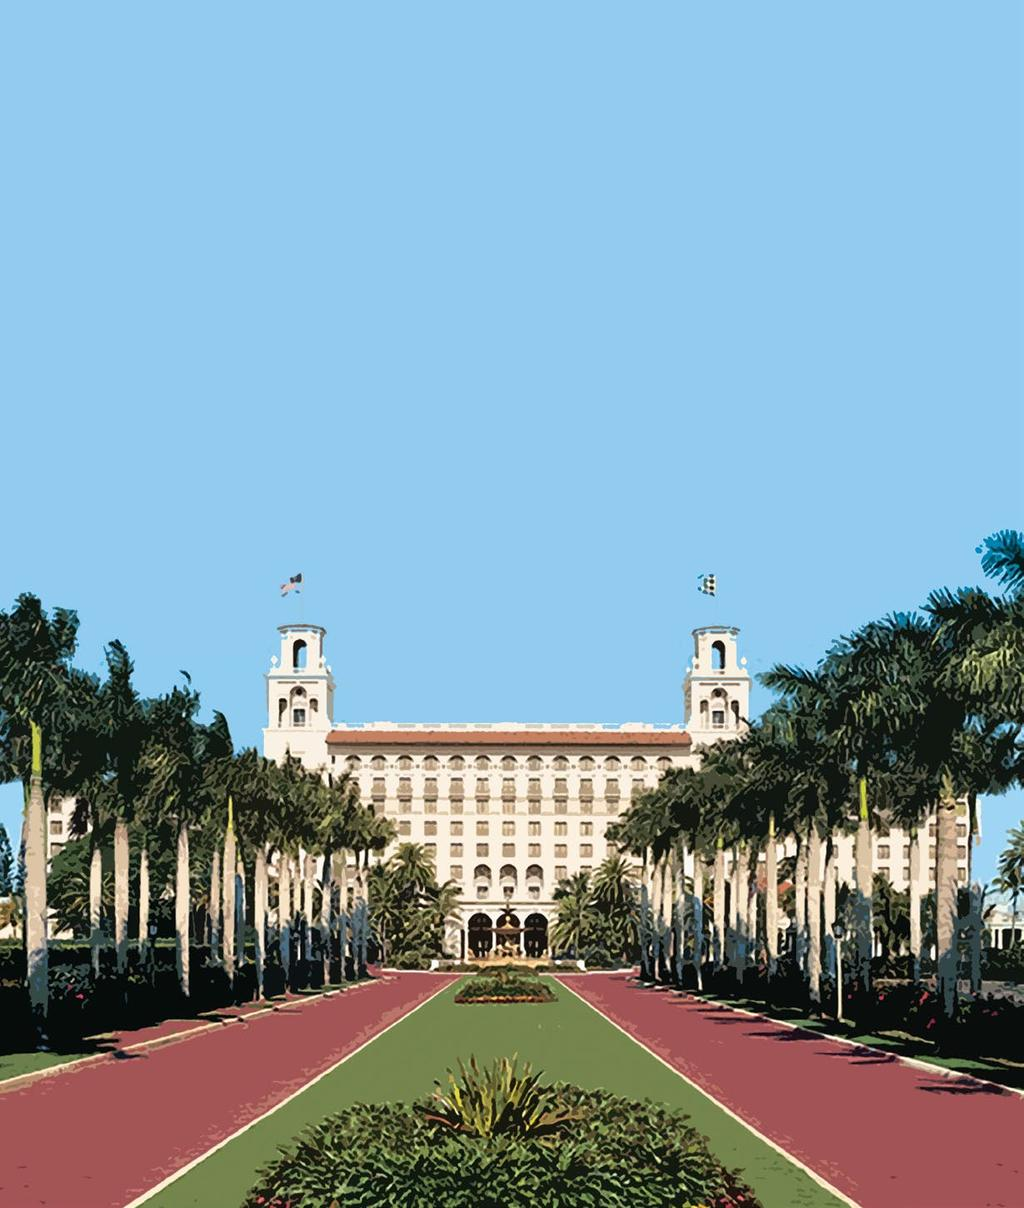 WWW.FSAHQ.ORG THE FLORIDA SOCIETY OF ANESTHESIOLOGISTS ANNUAL MEETING & WORKSHOPS June 8-10, 2018 The Breakers Palm Beach, Florida PRESIDENT: D.